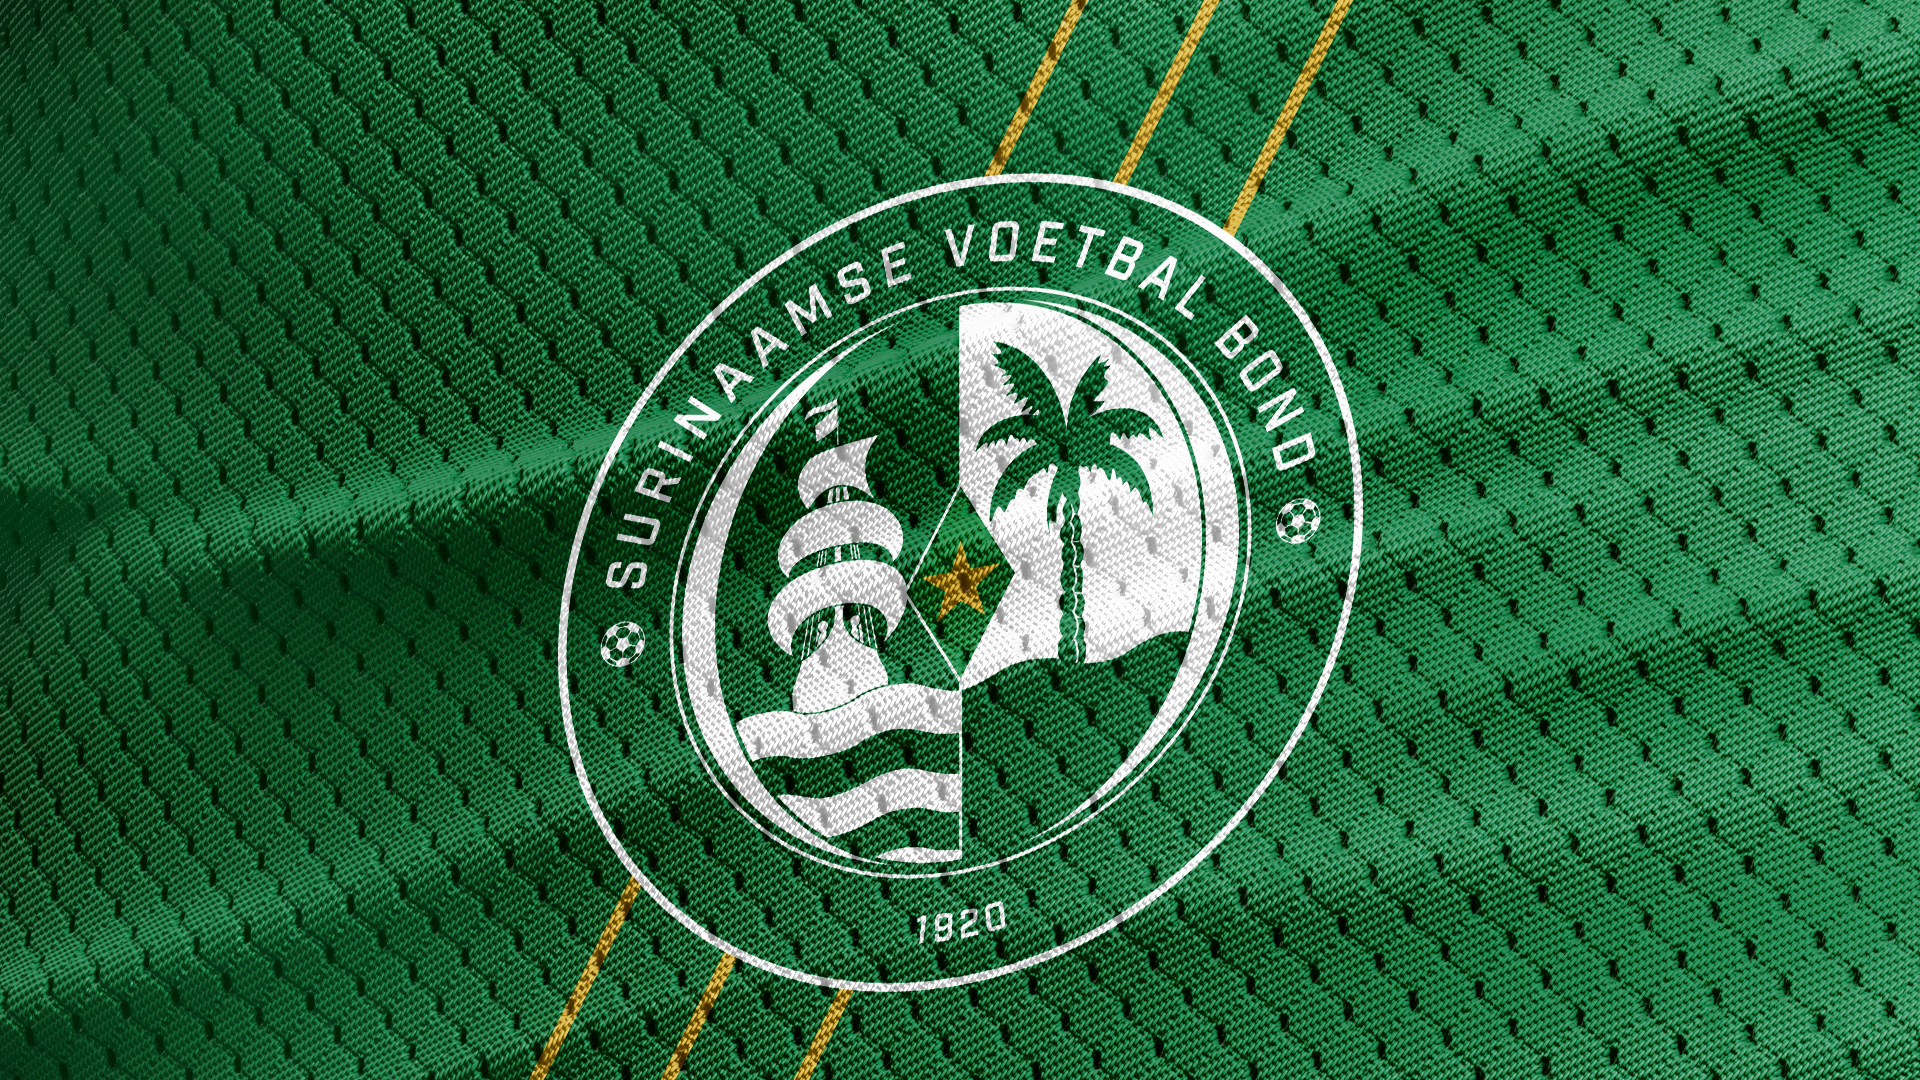 Surinaamse Voetbal Bond Logo on away kit